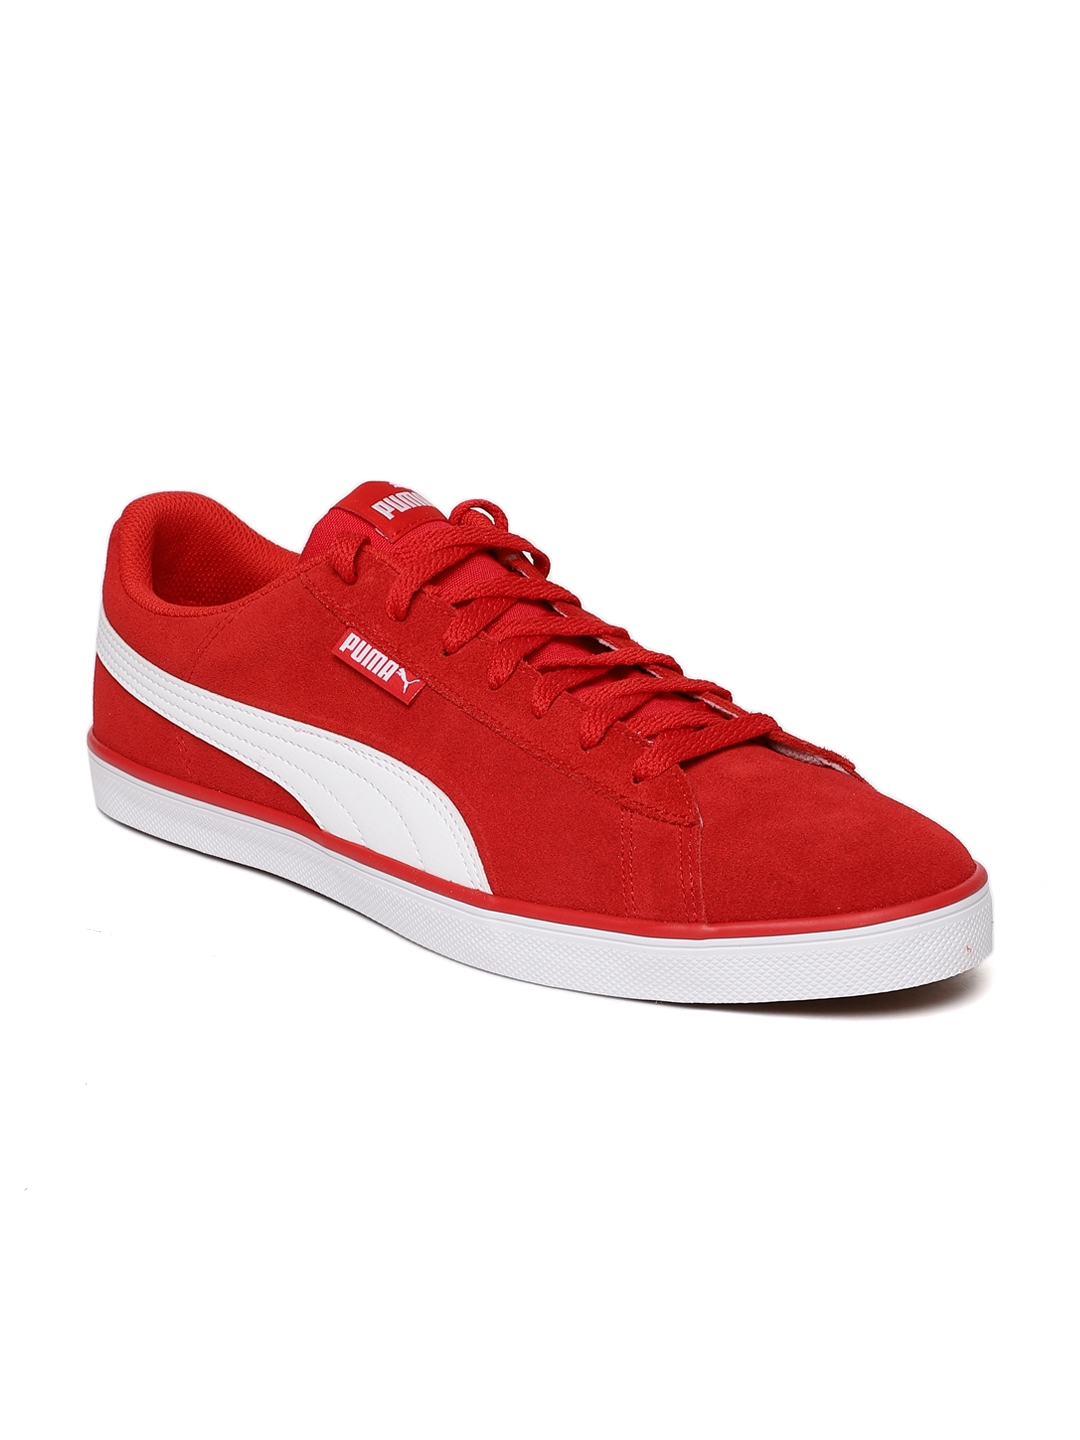 4367b2557413cc Buy Puma Men Red Urban Plus SD Suede Sneakers - Casual Shoes for Men ...